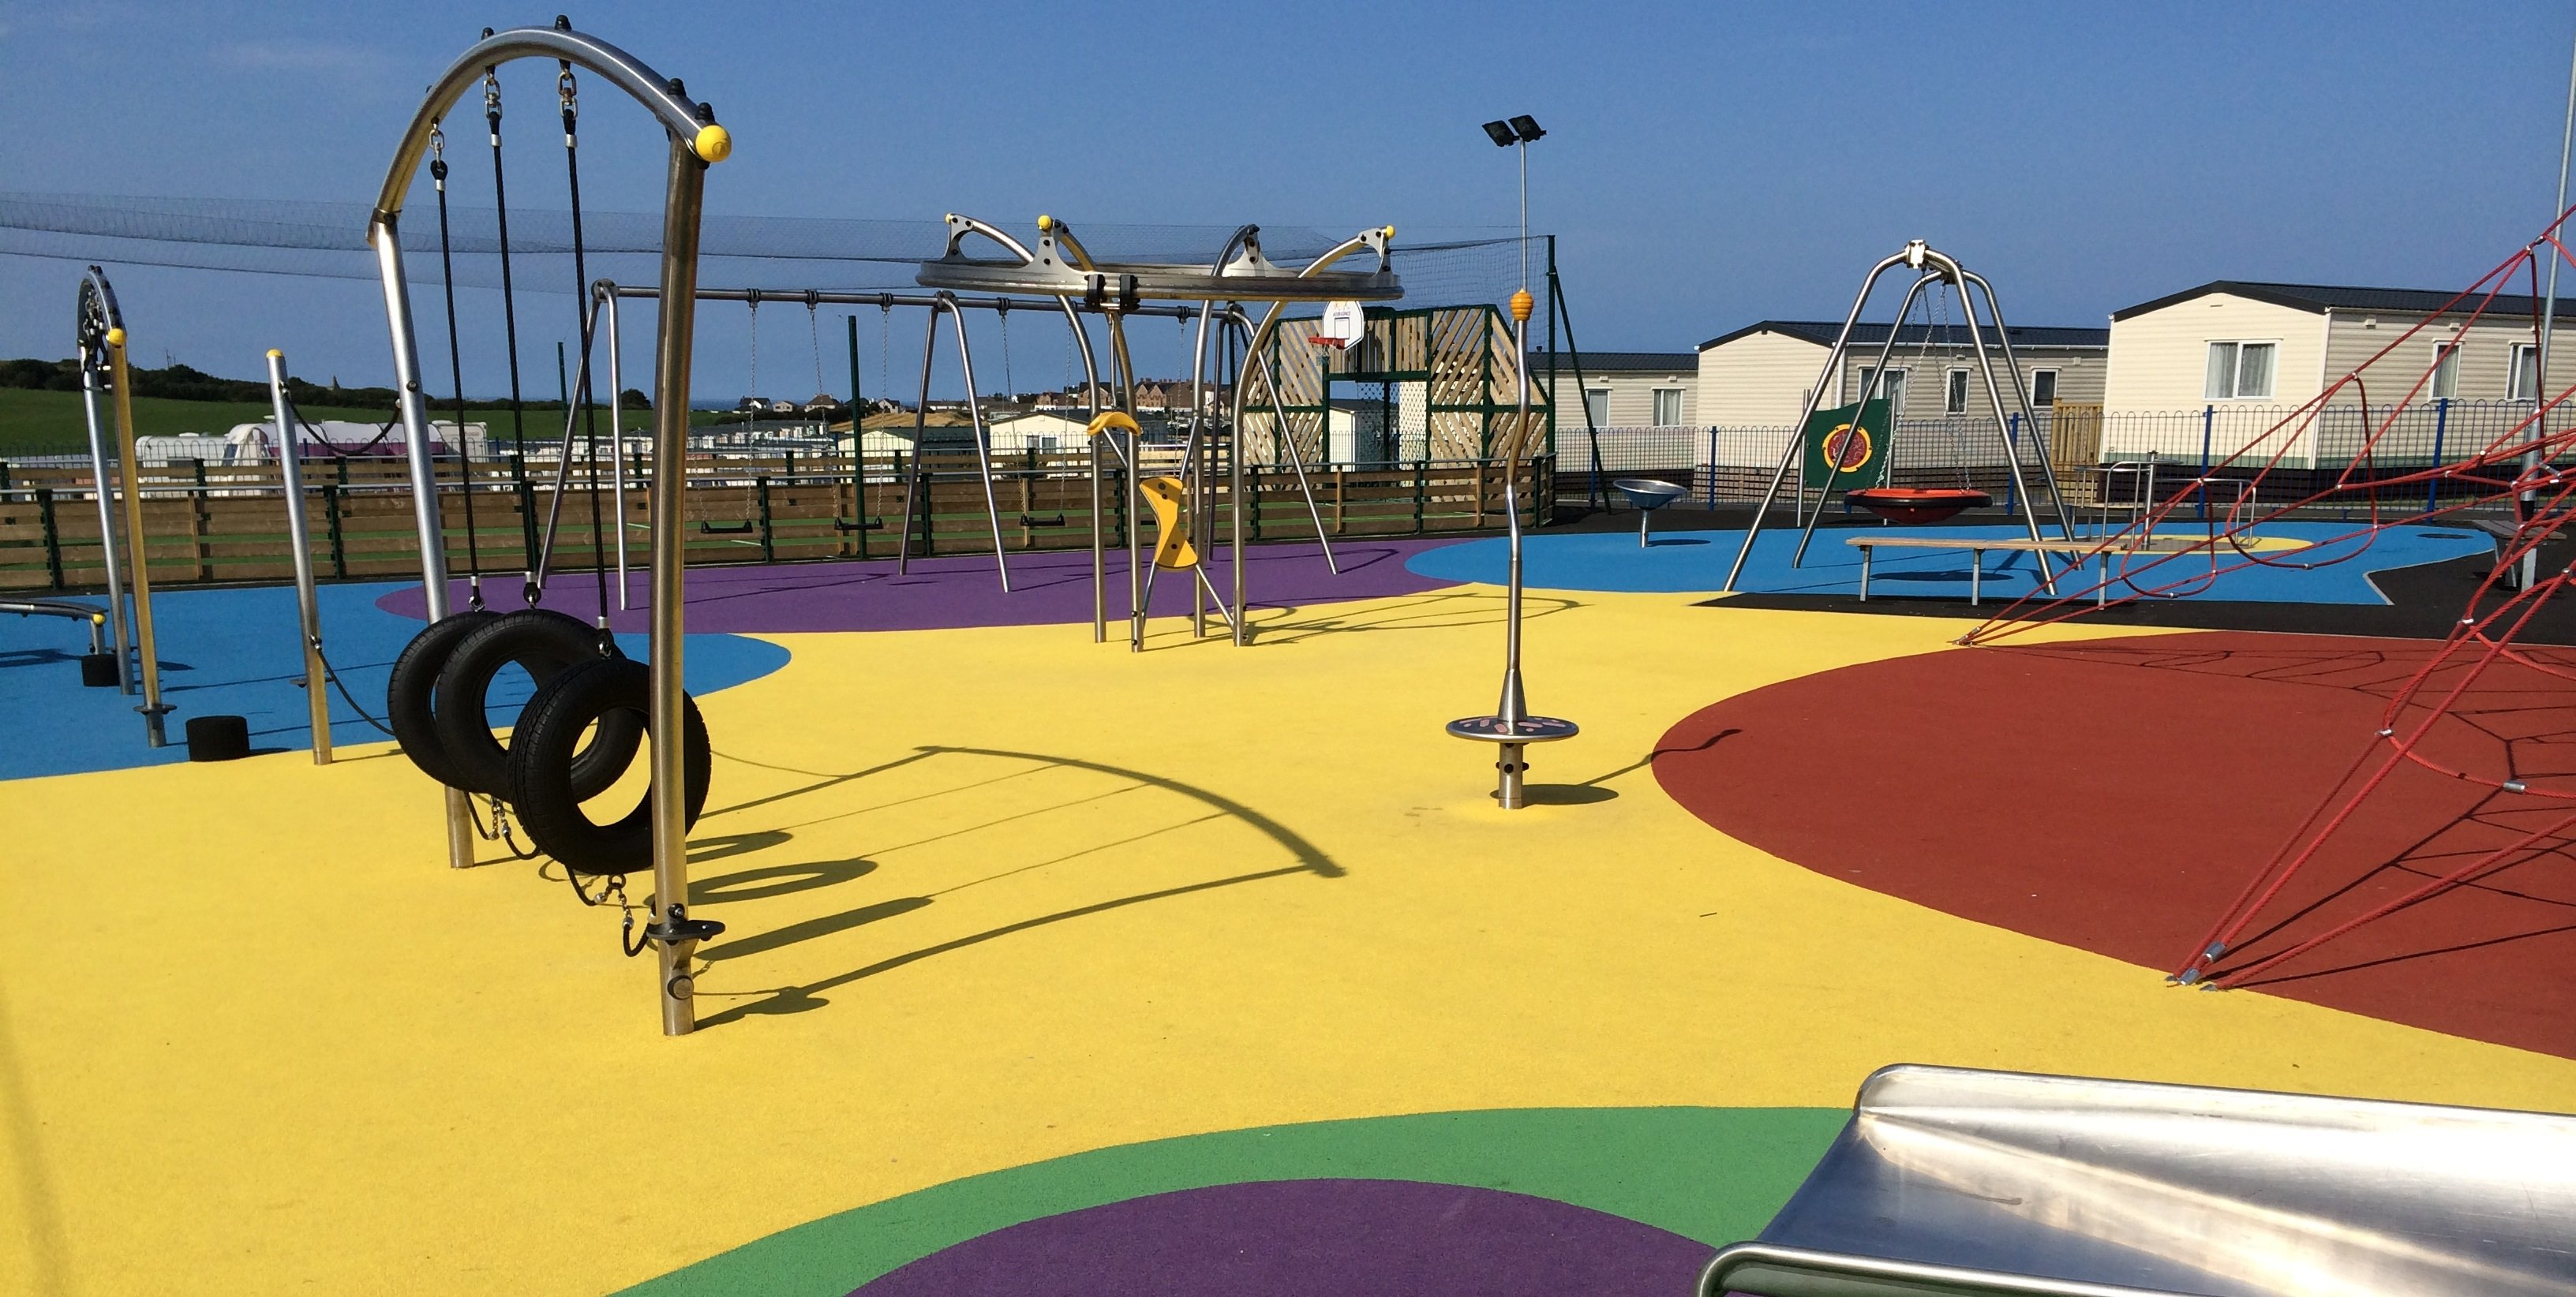 Colourful play area surrounded by holiday chalets